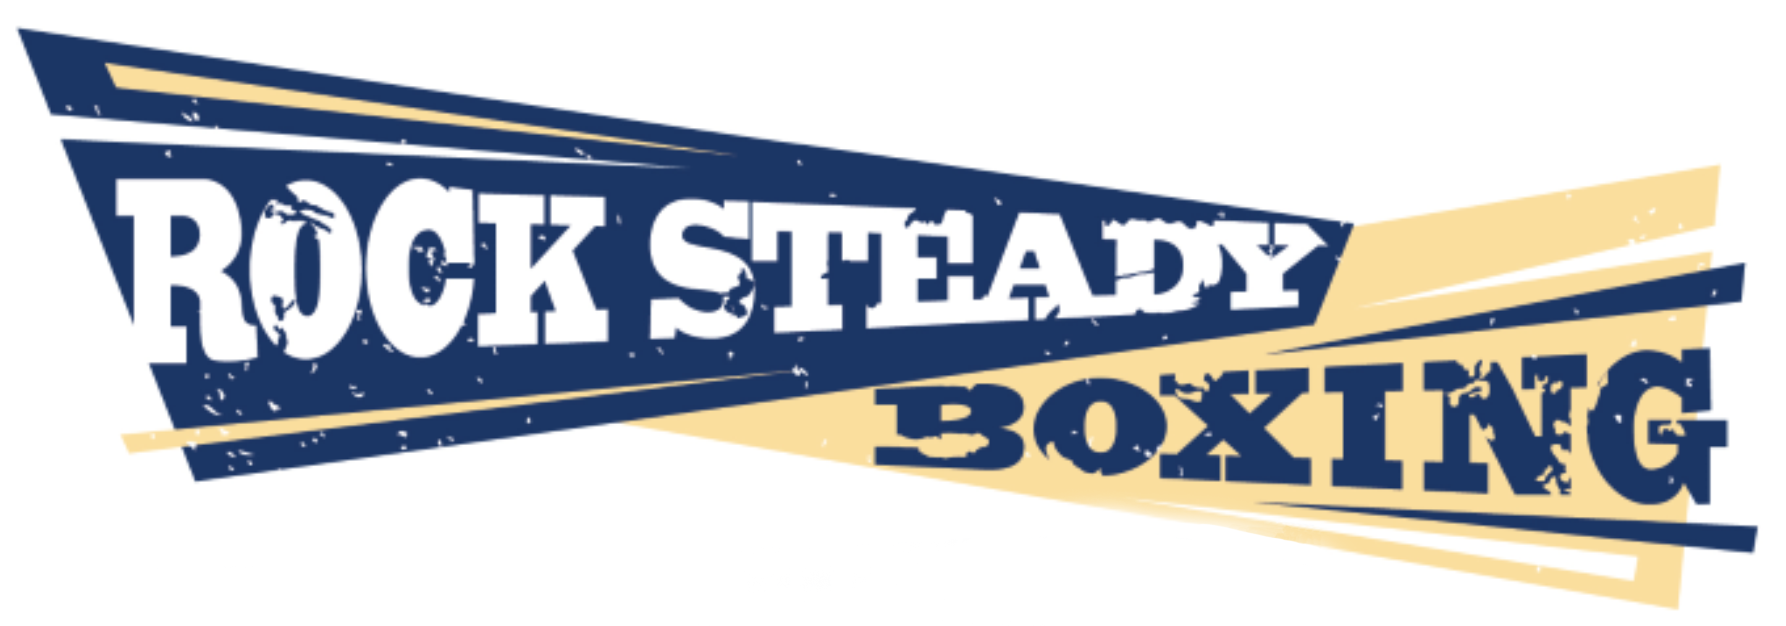 Rocksteady Boxing logo